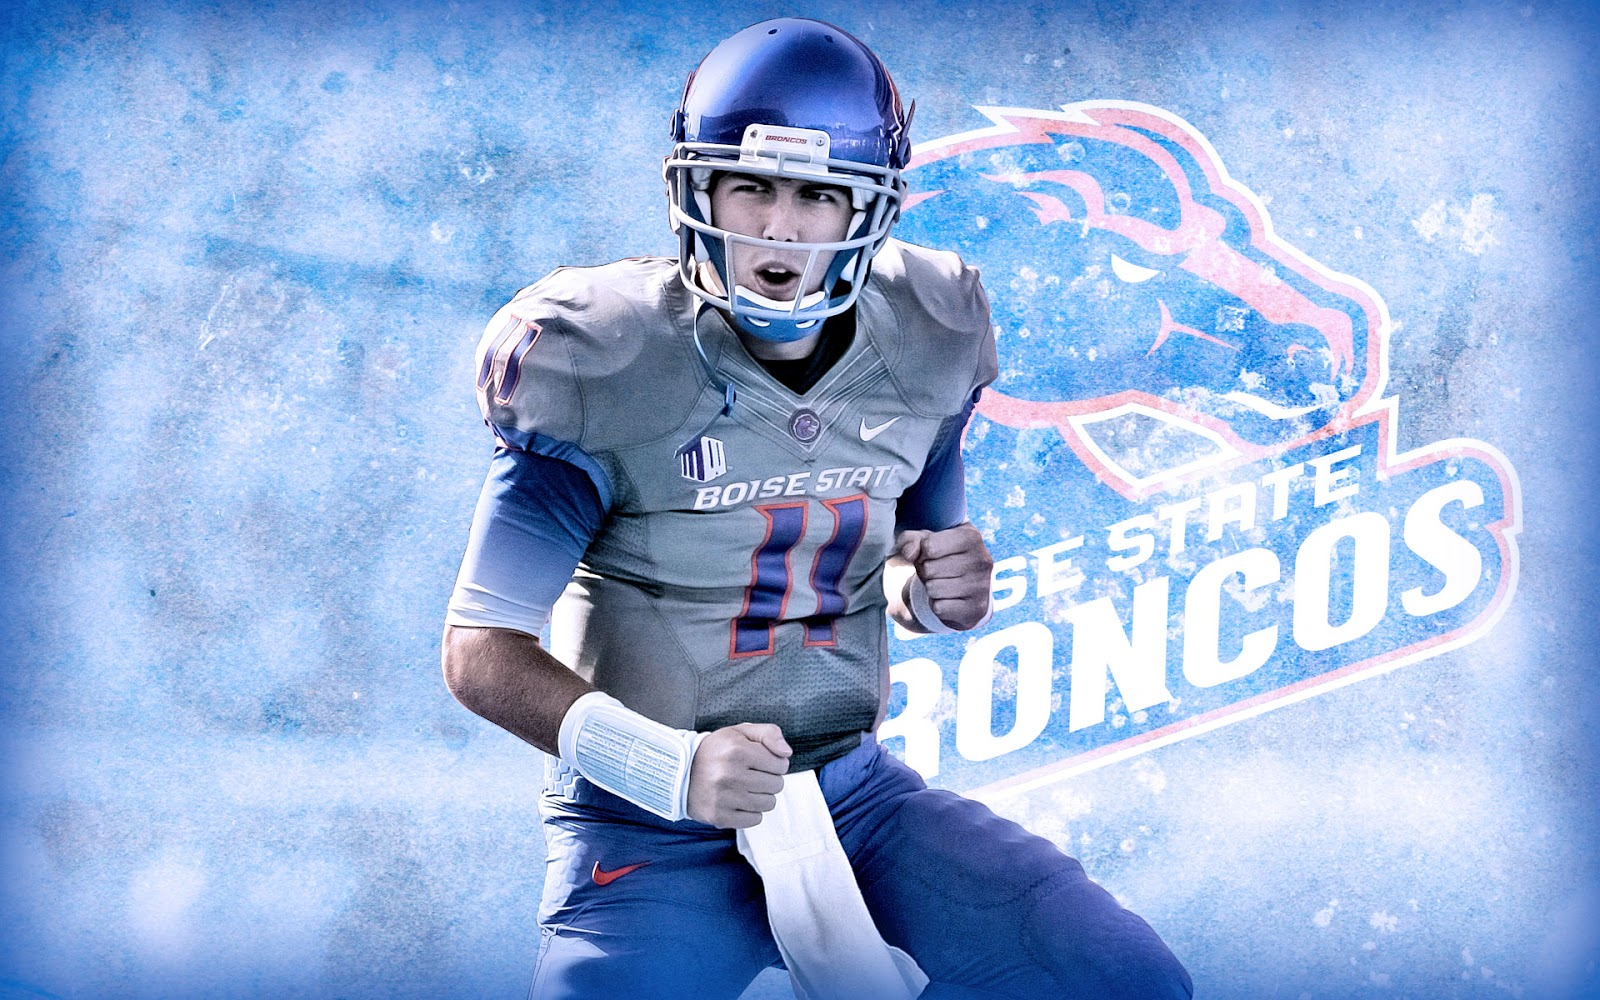 Boise State Broncos Football Wallpapers: Boise State Broncos